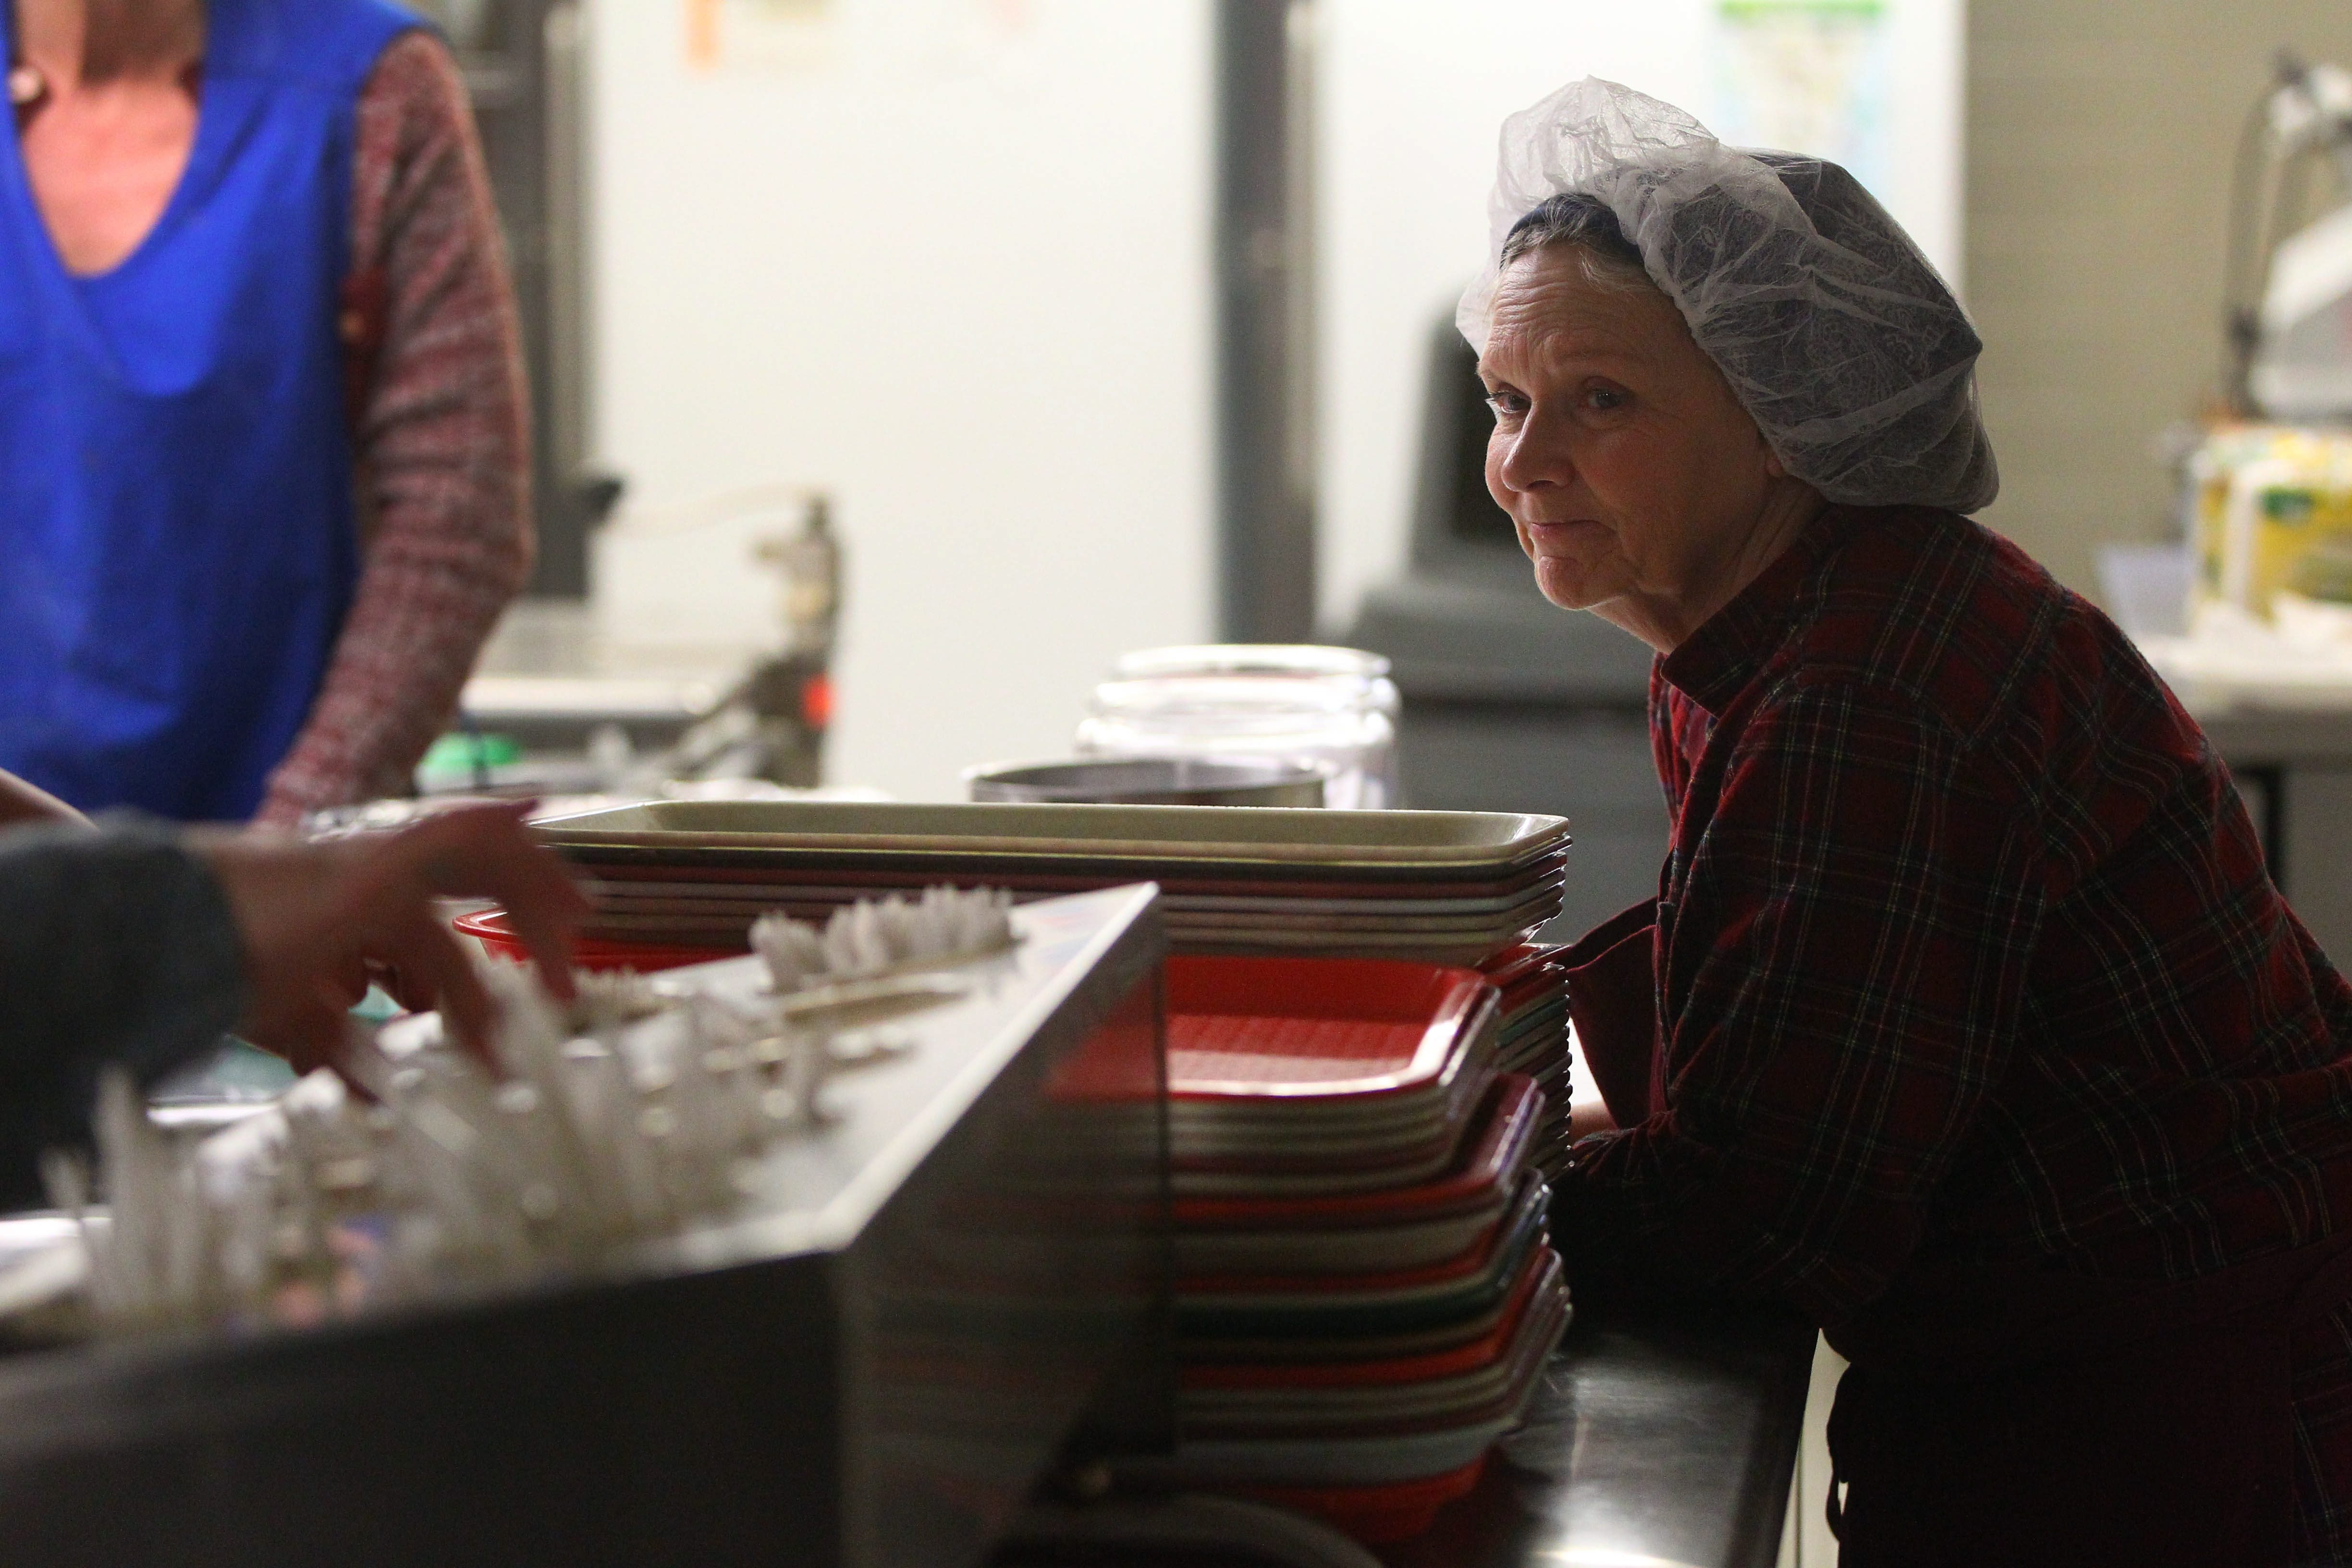 Bonnie McCarthy from the Welfare to Work program helps distribute food trays at the Community Missions on Buffalo Avenue in Niagara Falls. Niagara County Coalition for Services to the Homeless will hold a Poverty Conference on Friday at Niagara U.